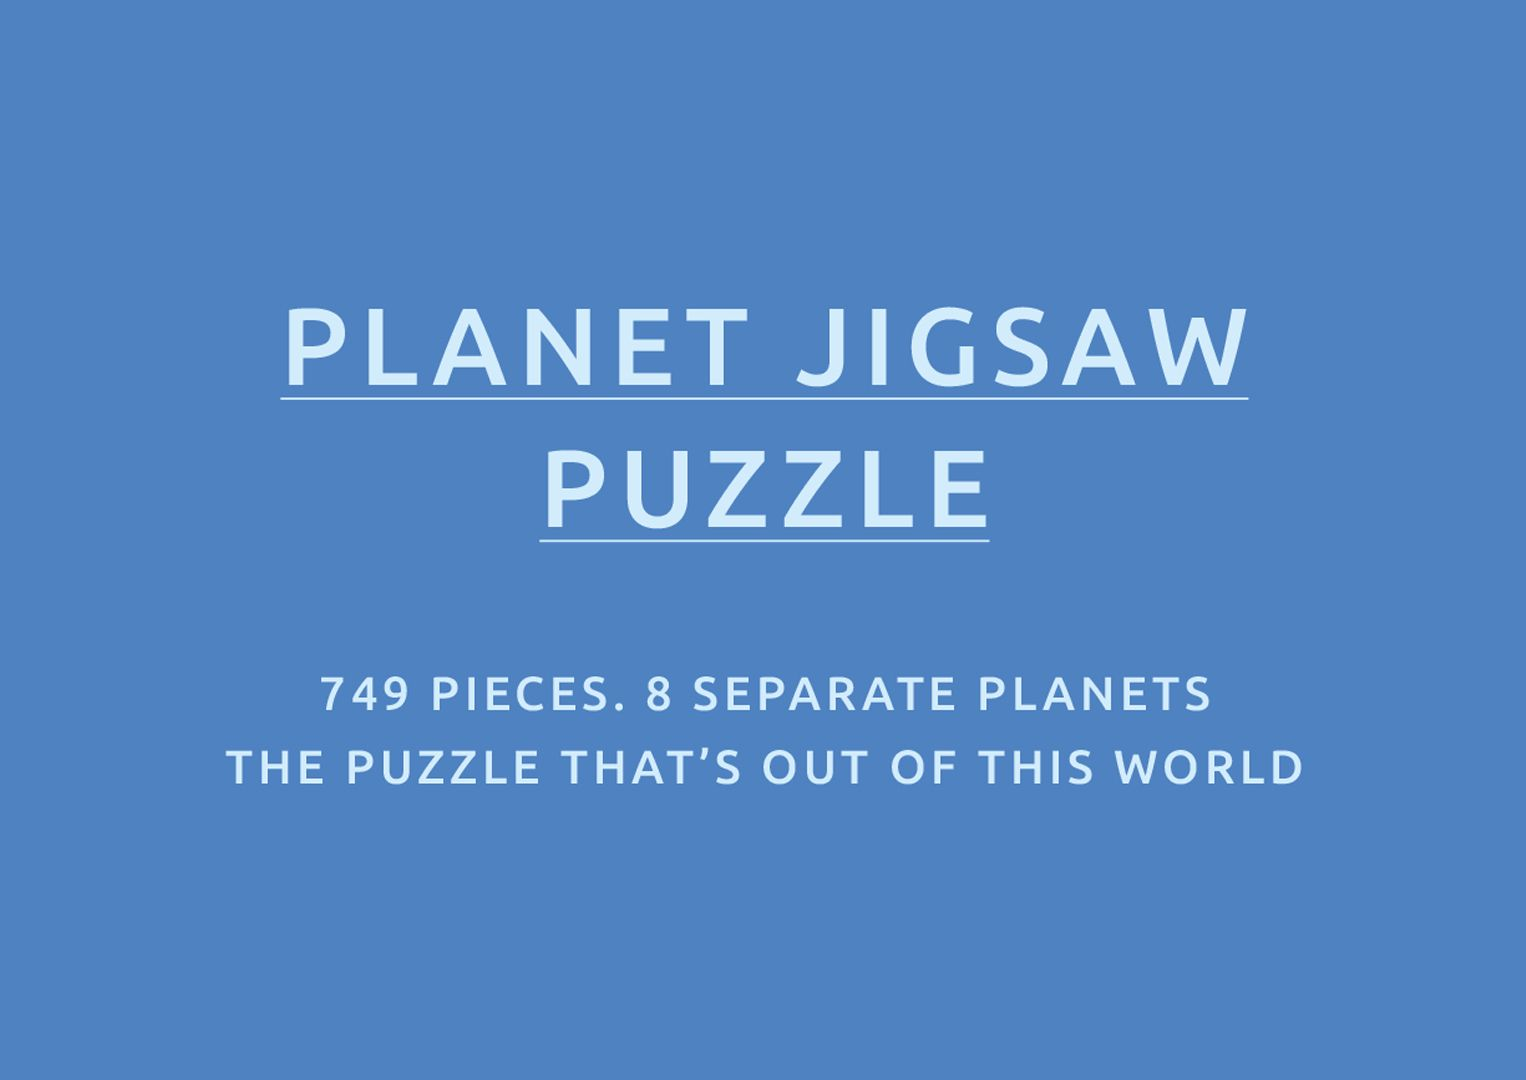 Planet Jigsaw Puzzle Text